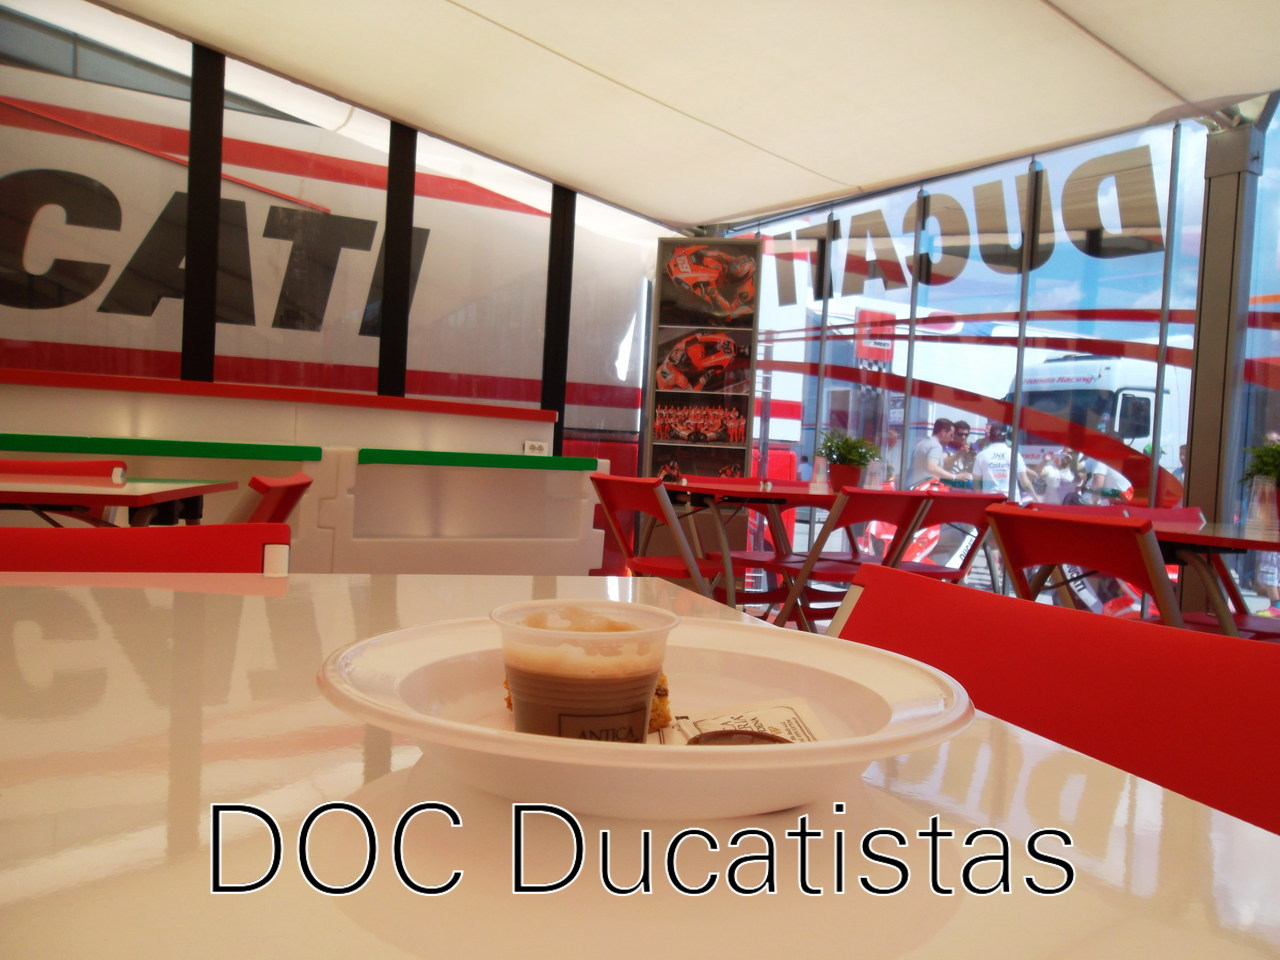 Ducati Team | Ducatistas - Ducati Desmo Owners Club